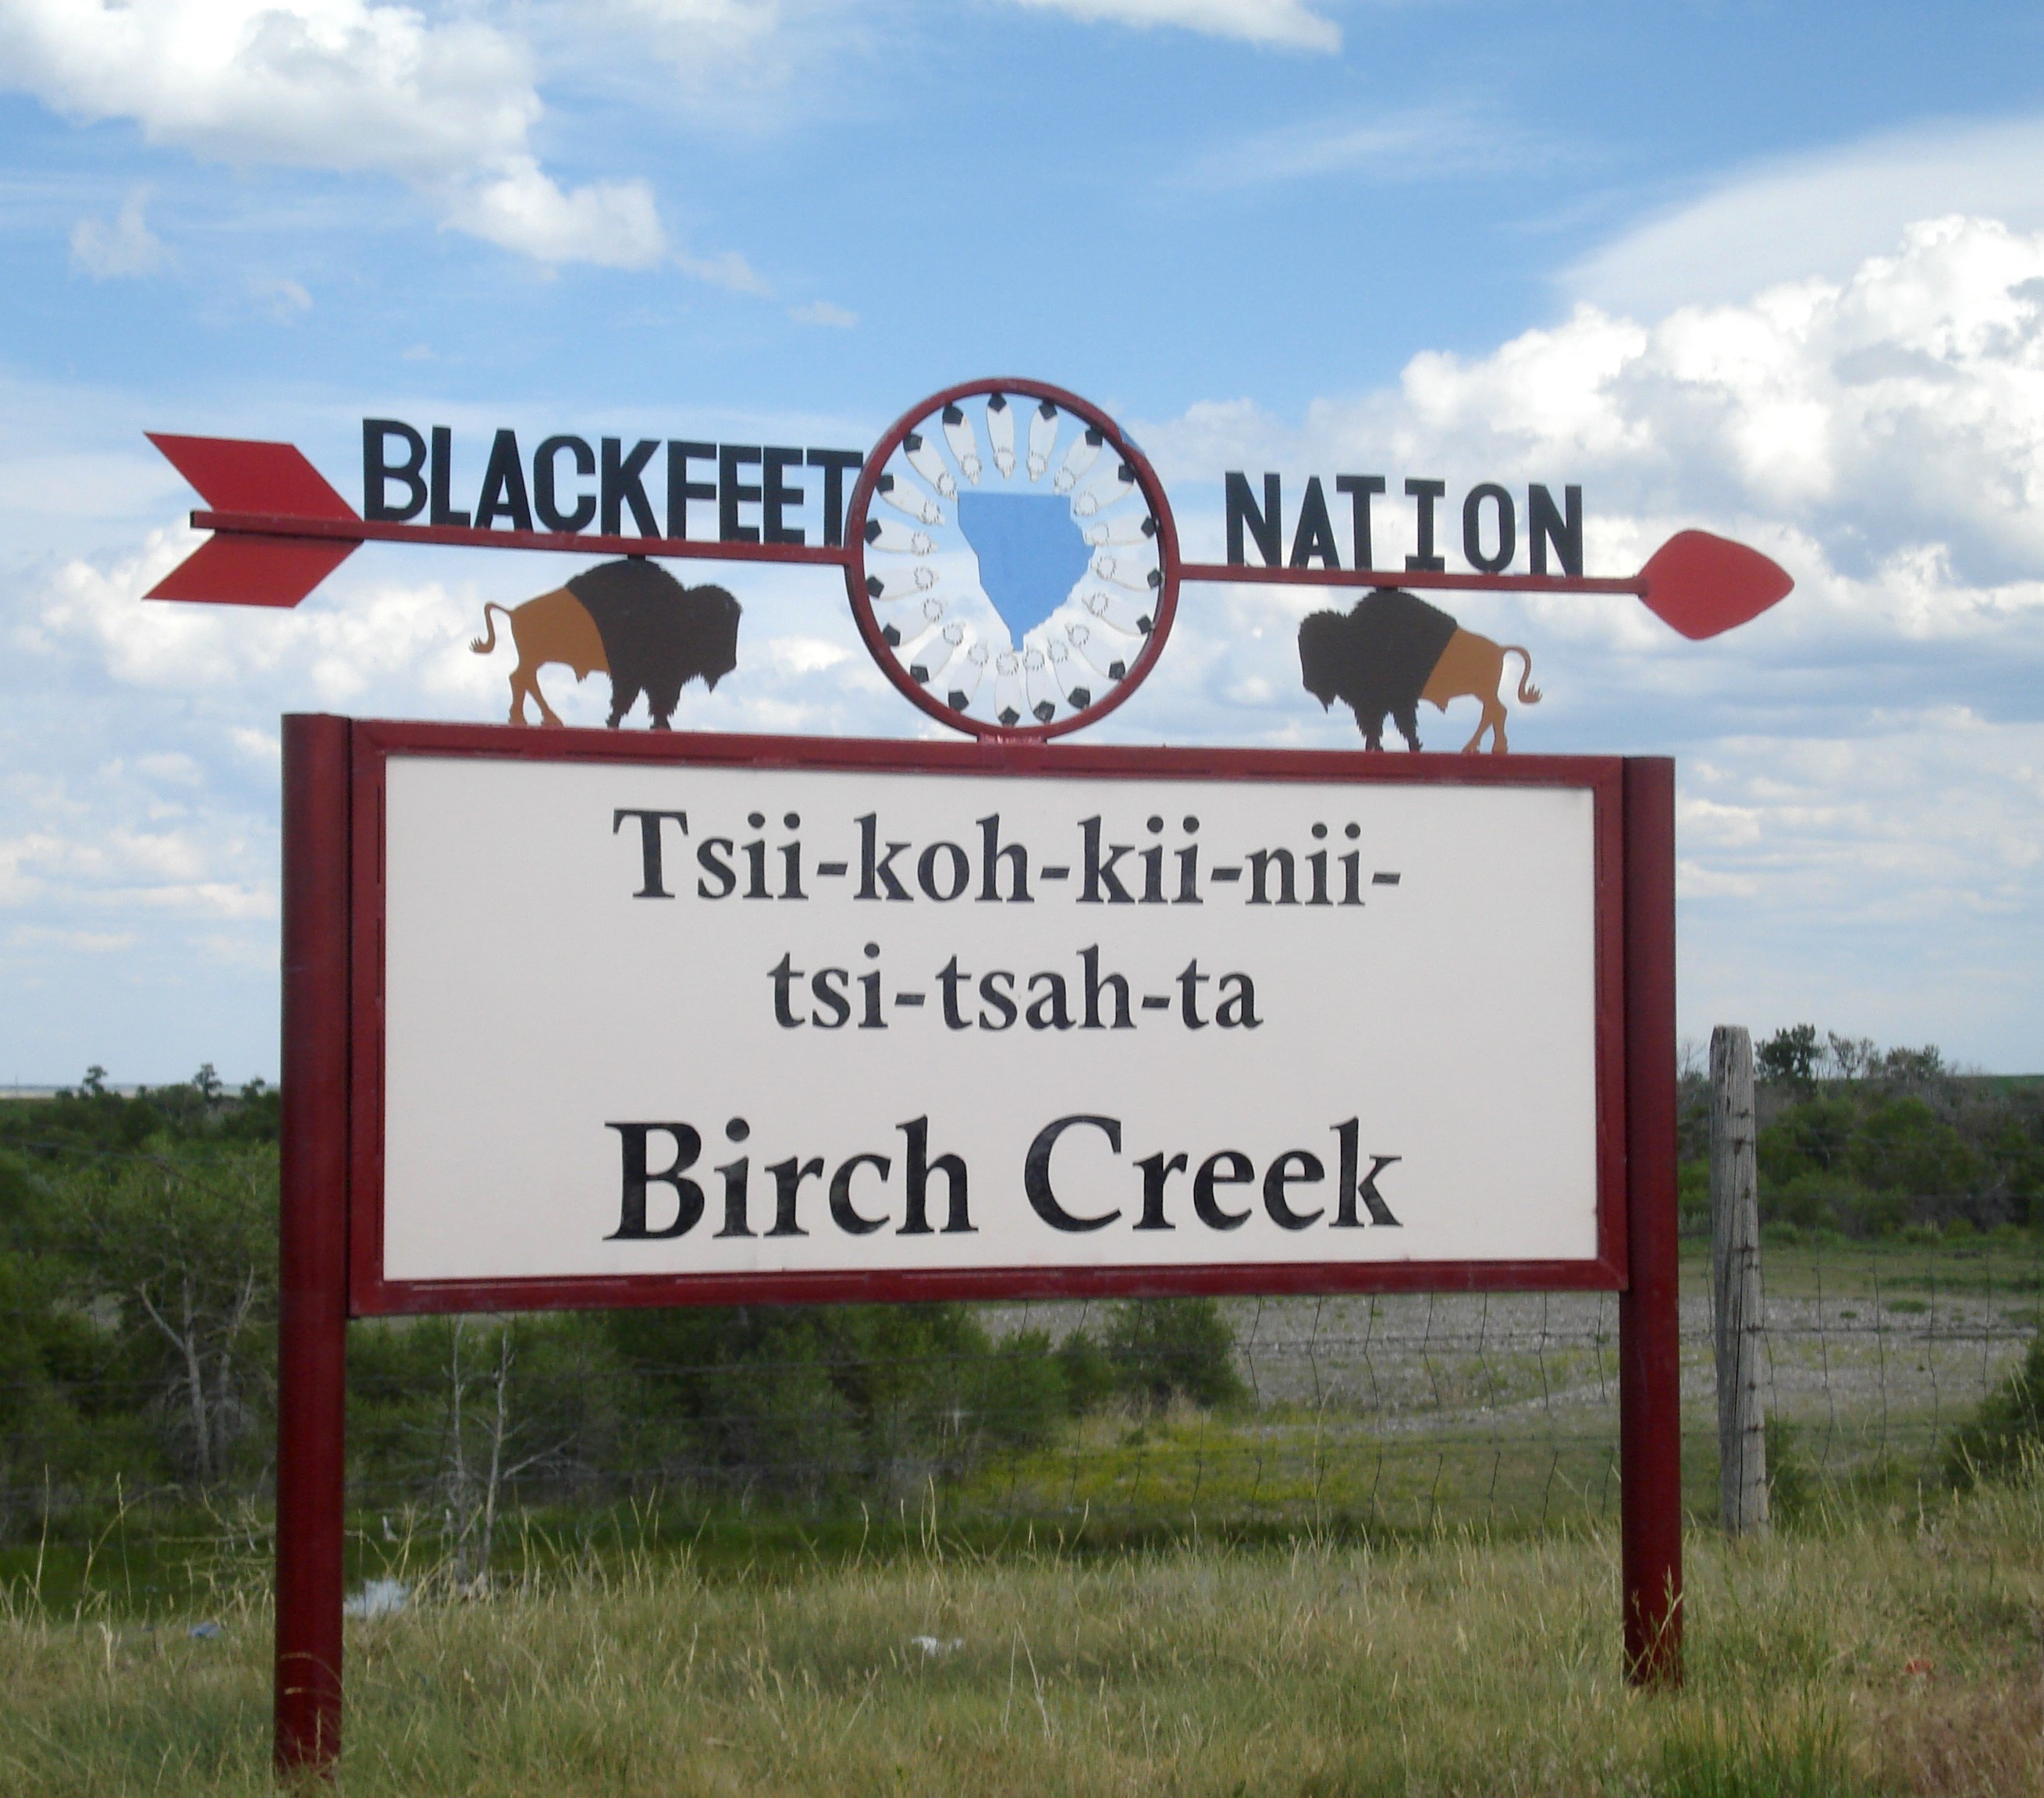 Blackfeet Nation welcomes movement on water rights settlement